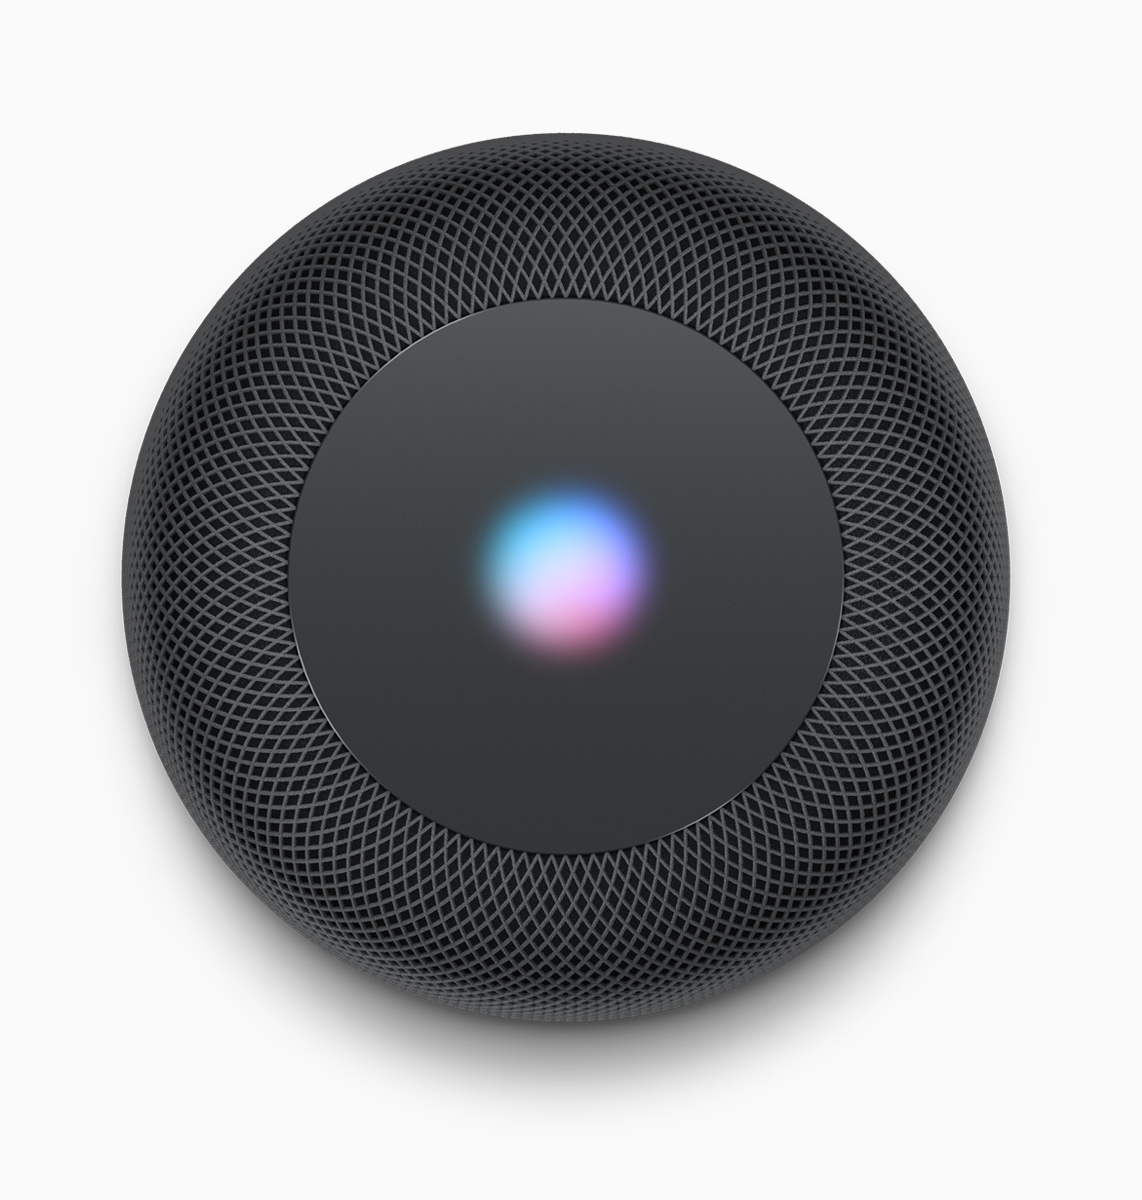 Siri in your living room: Apple unveils $349 HomePod